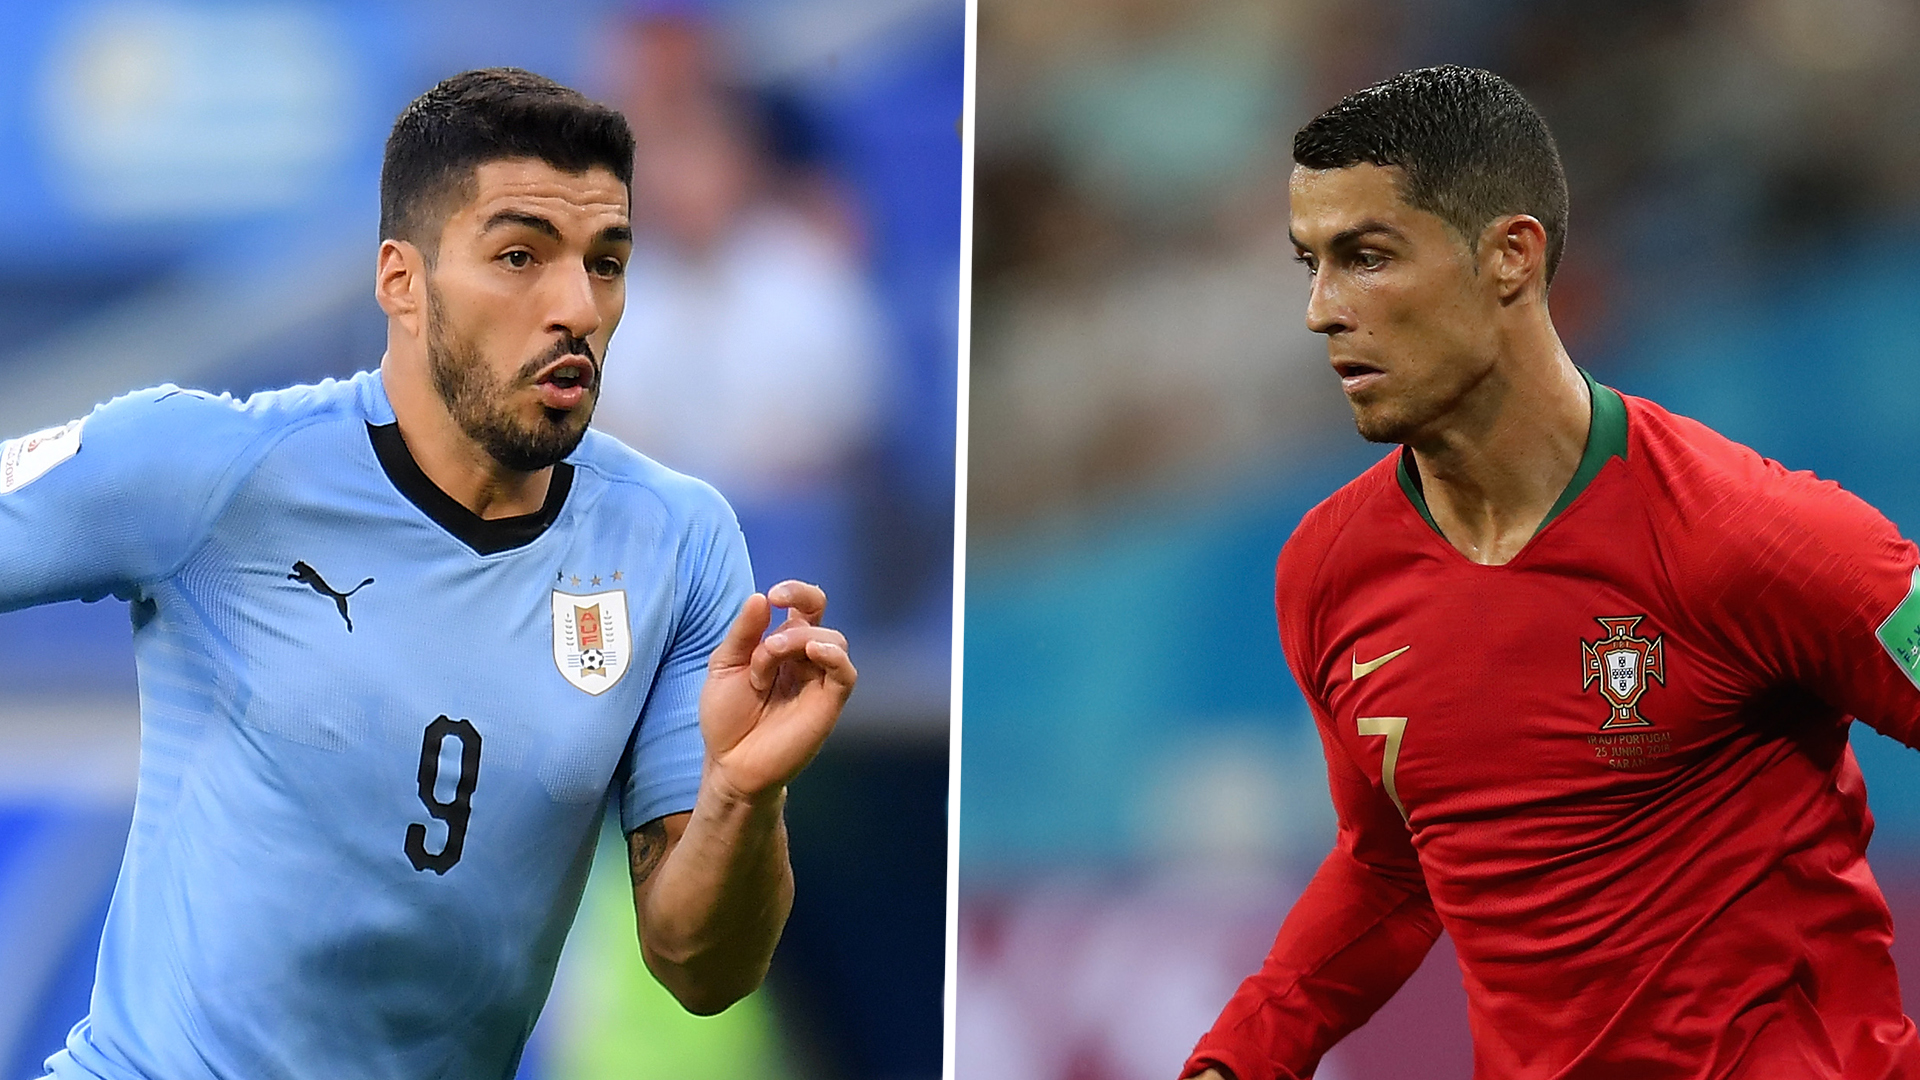 Uruguay primed to quell Ronaldo threat